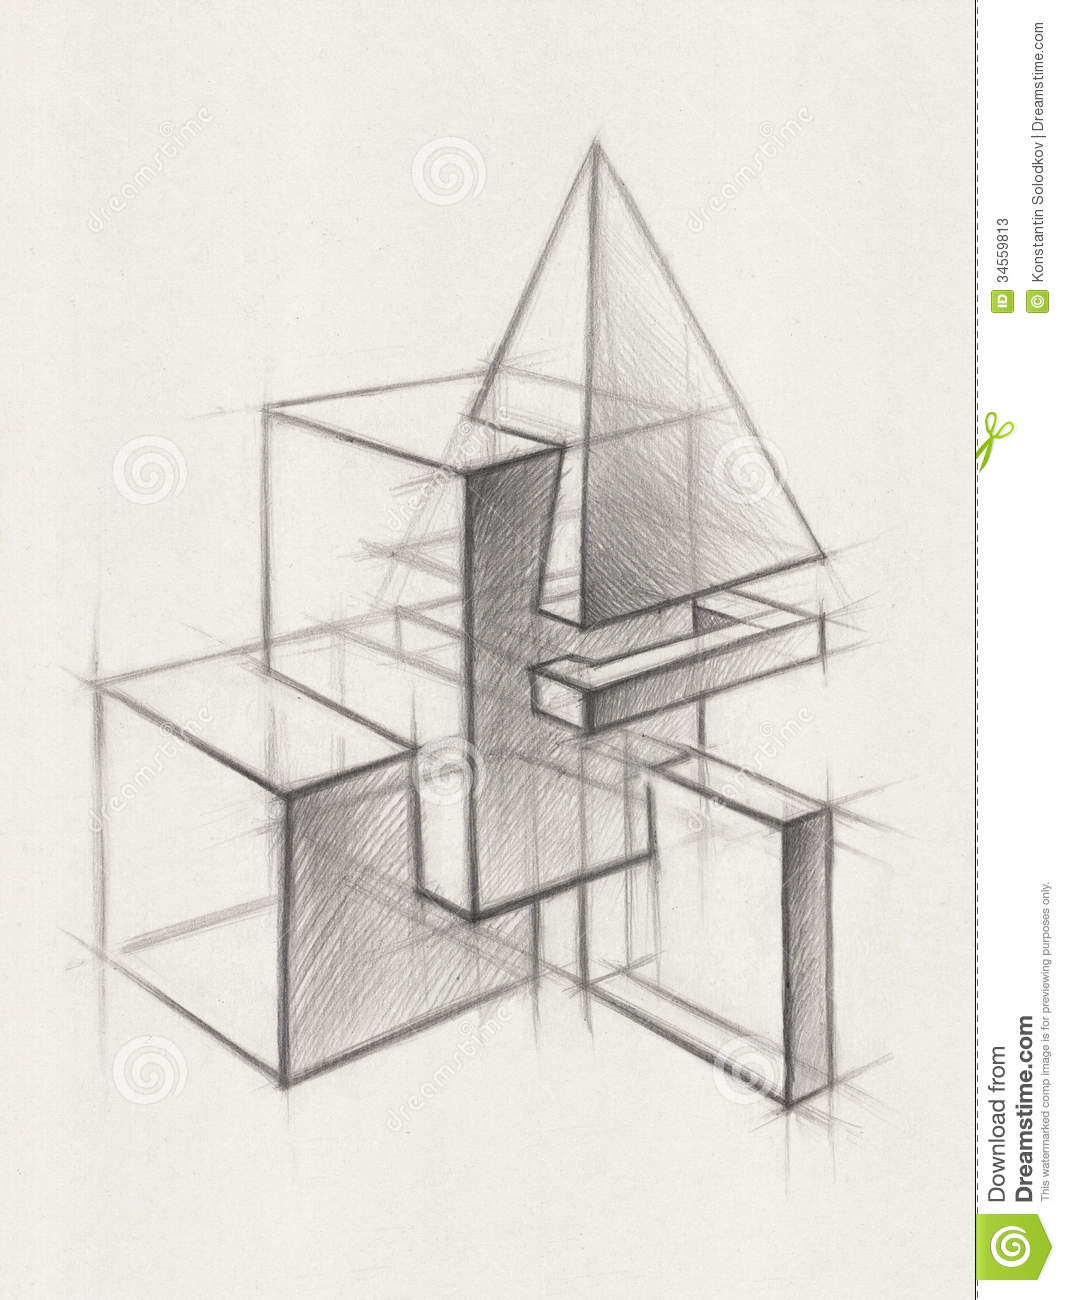 Solid Geometric Shapes stock illustration. Image of hand - 34559813 for 3d Geometric Shapes Drawings  29jwn